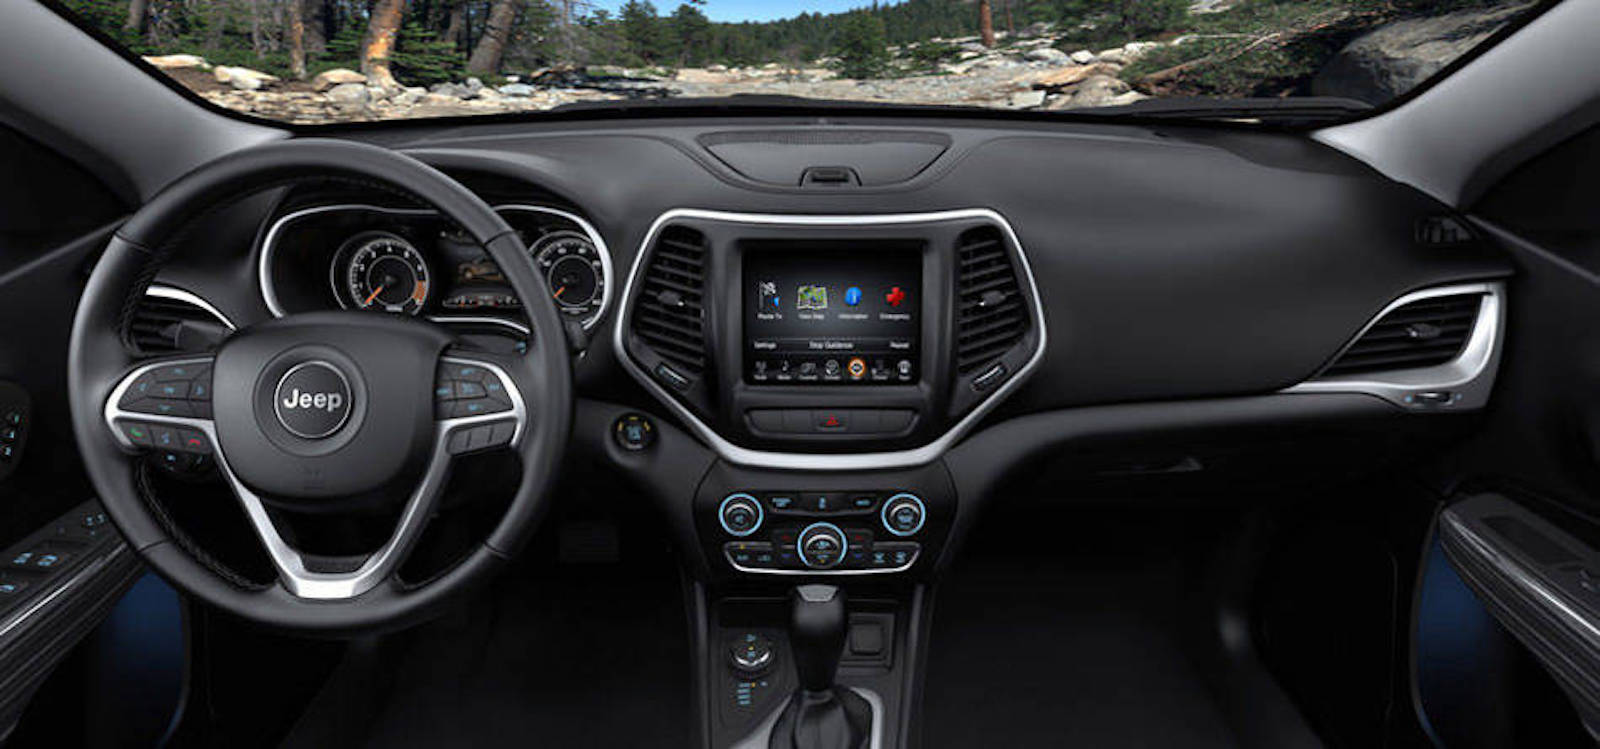 2016 Jeep Cherokee Technology